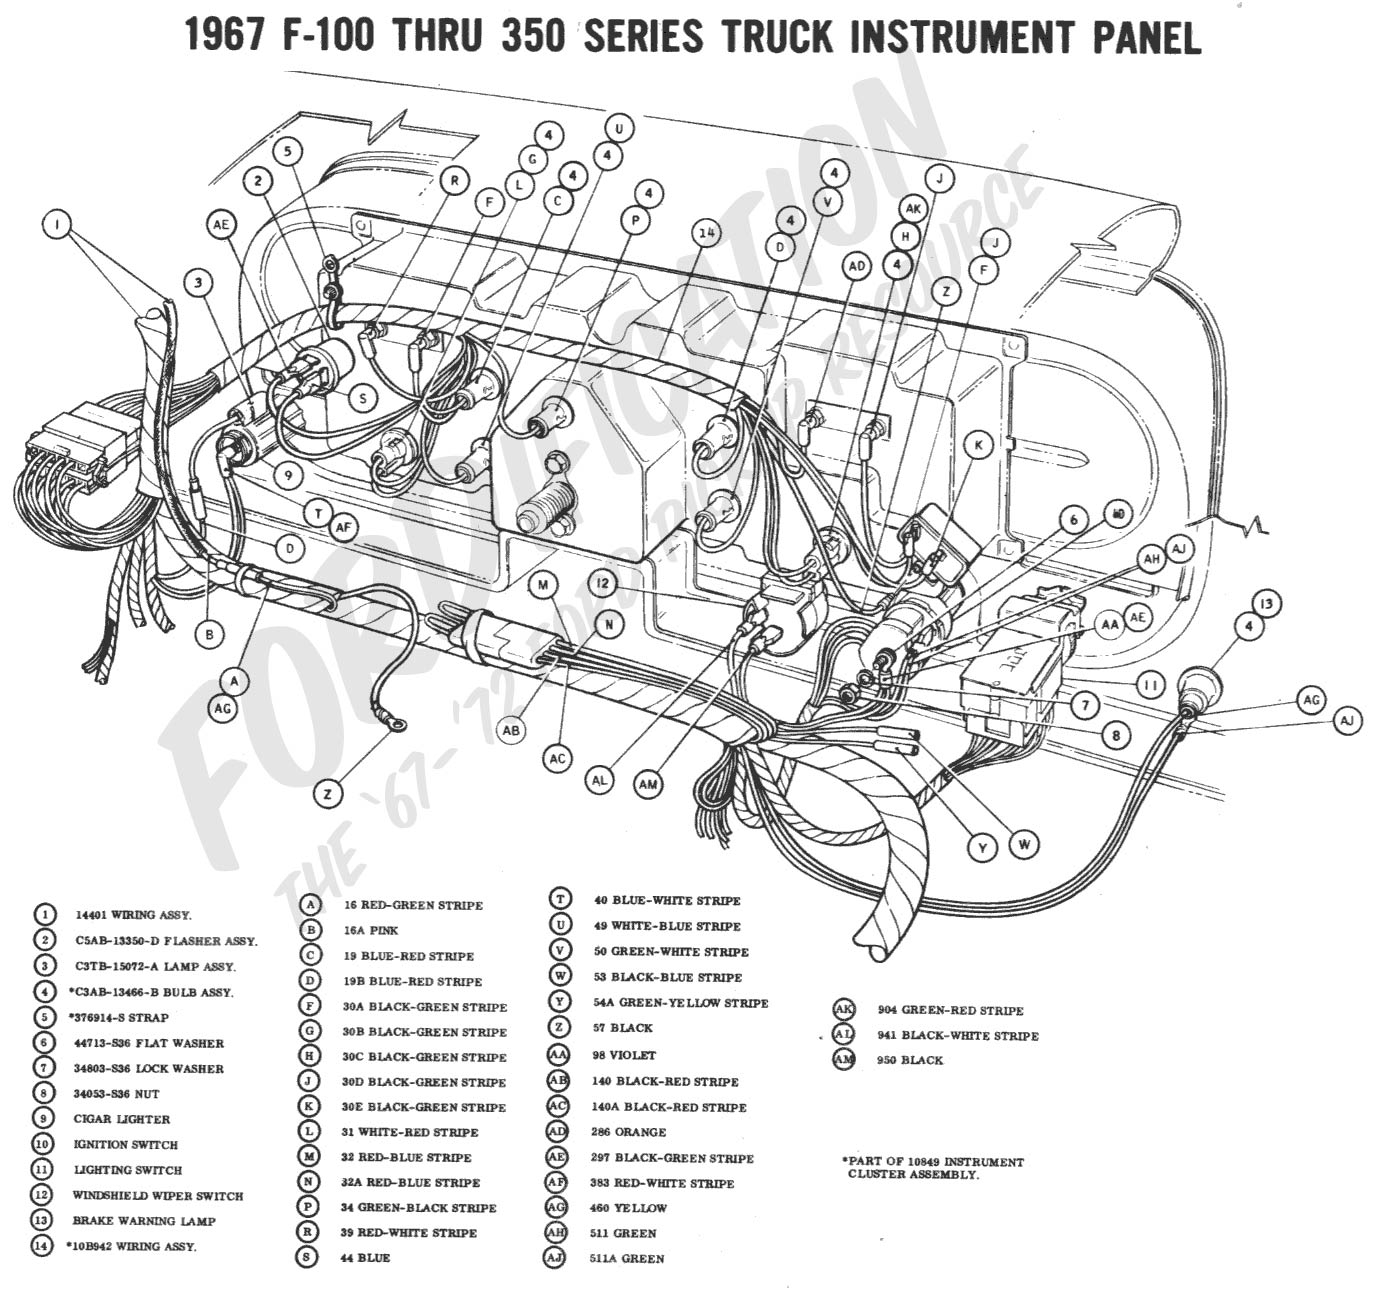 ford truck technical drawings and schematics section h wiring 1967 f 100 thru f 350 instrument panel 1967 master wiring diagram